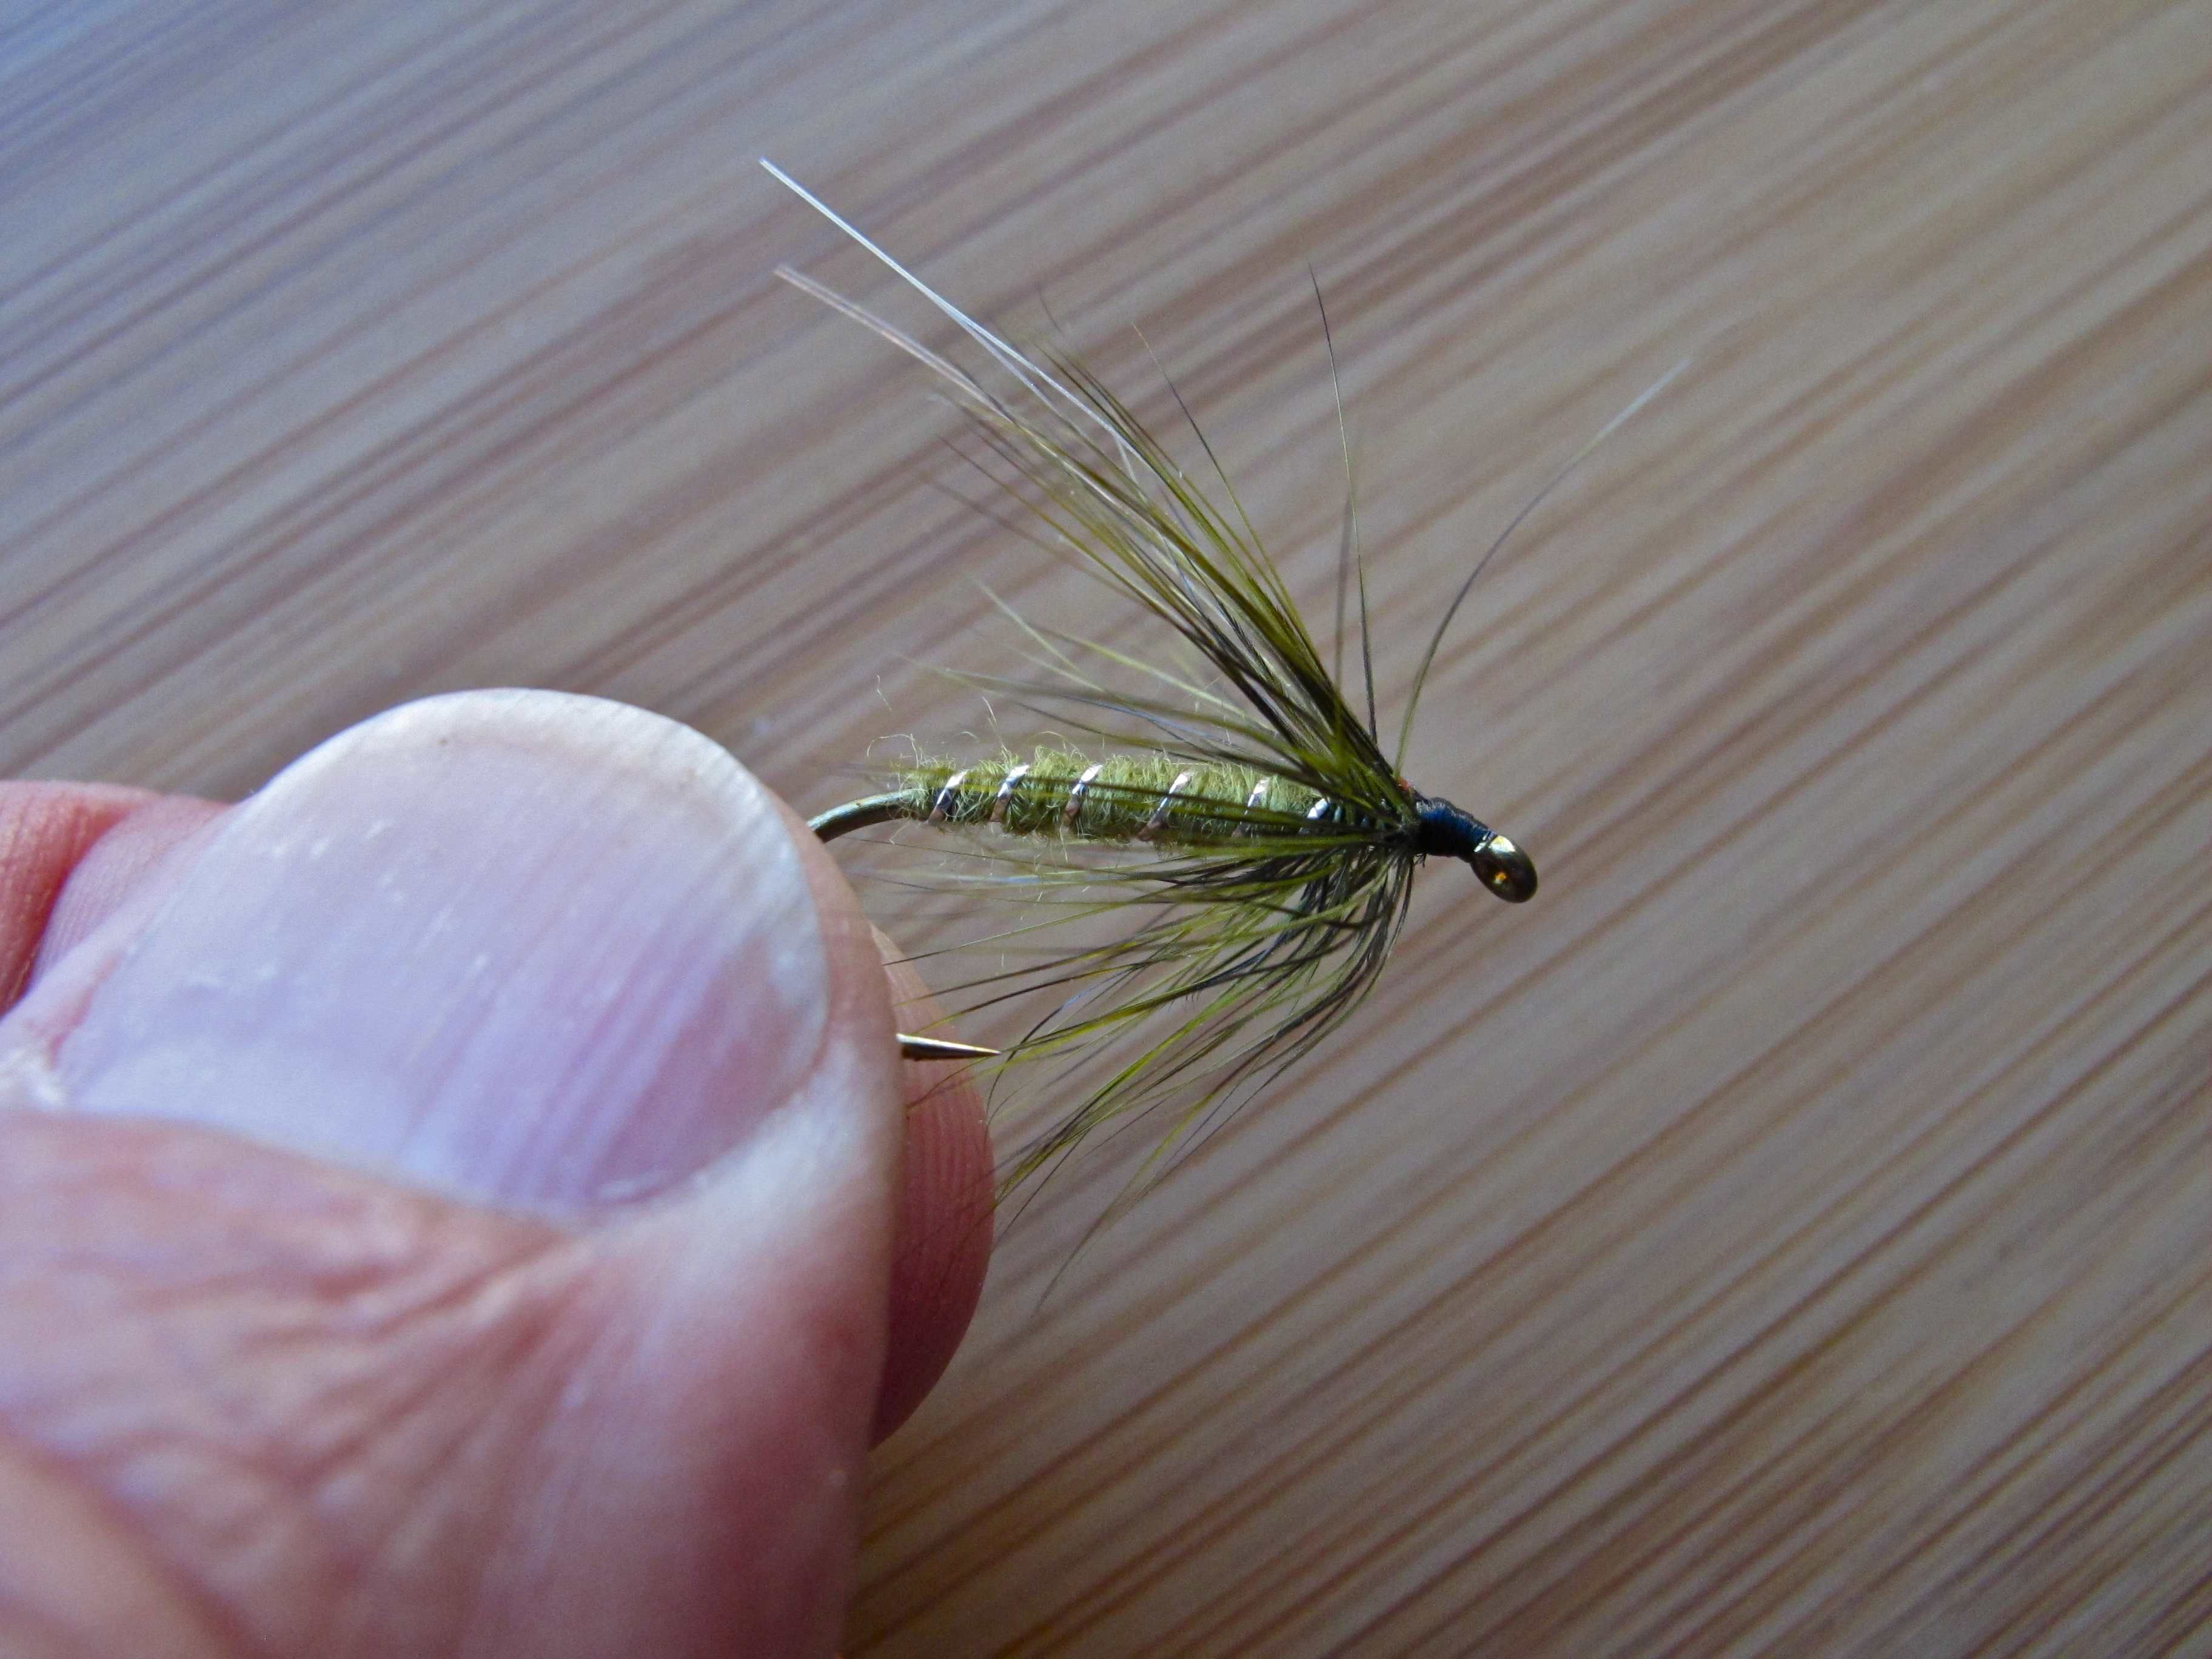 spider wet fly patterns - buscar con google | spiders, various, Fly Fishing Bait